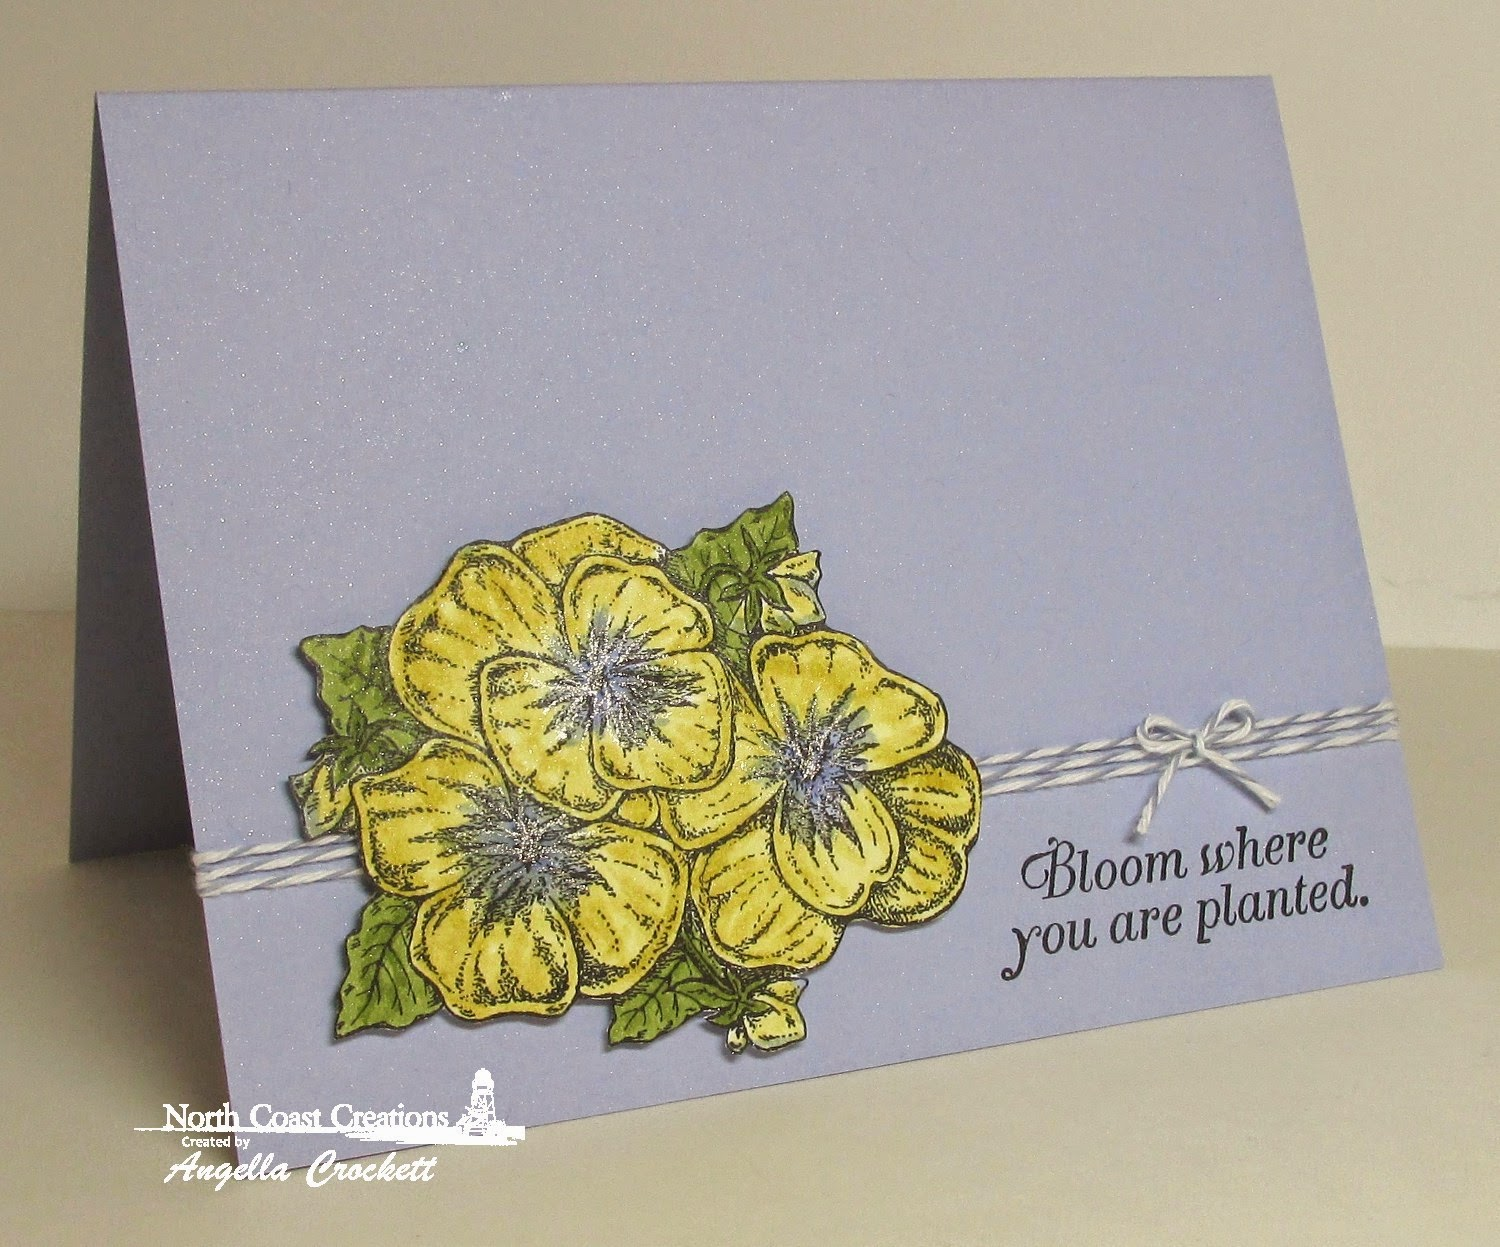 North Coast Creations Pansies, Card Designer Angie Crockett